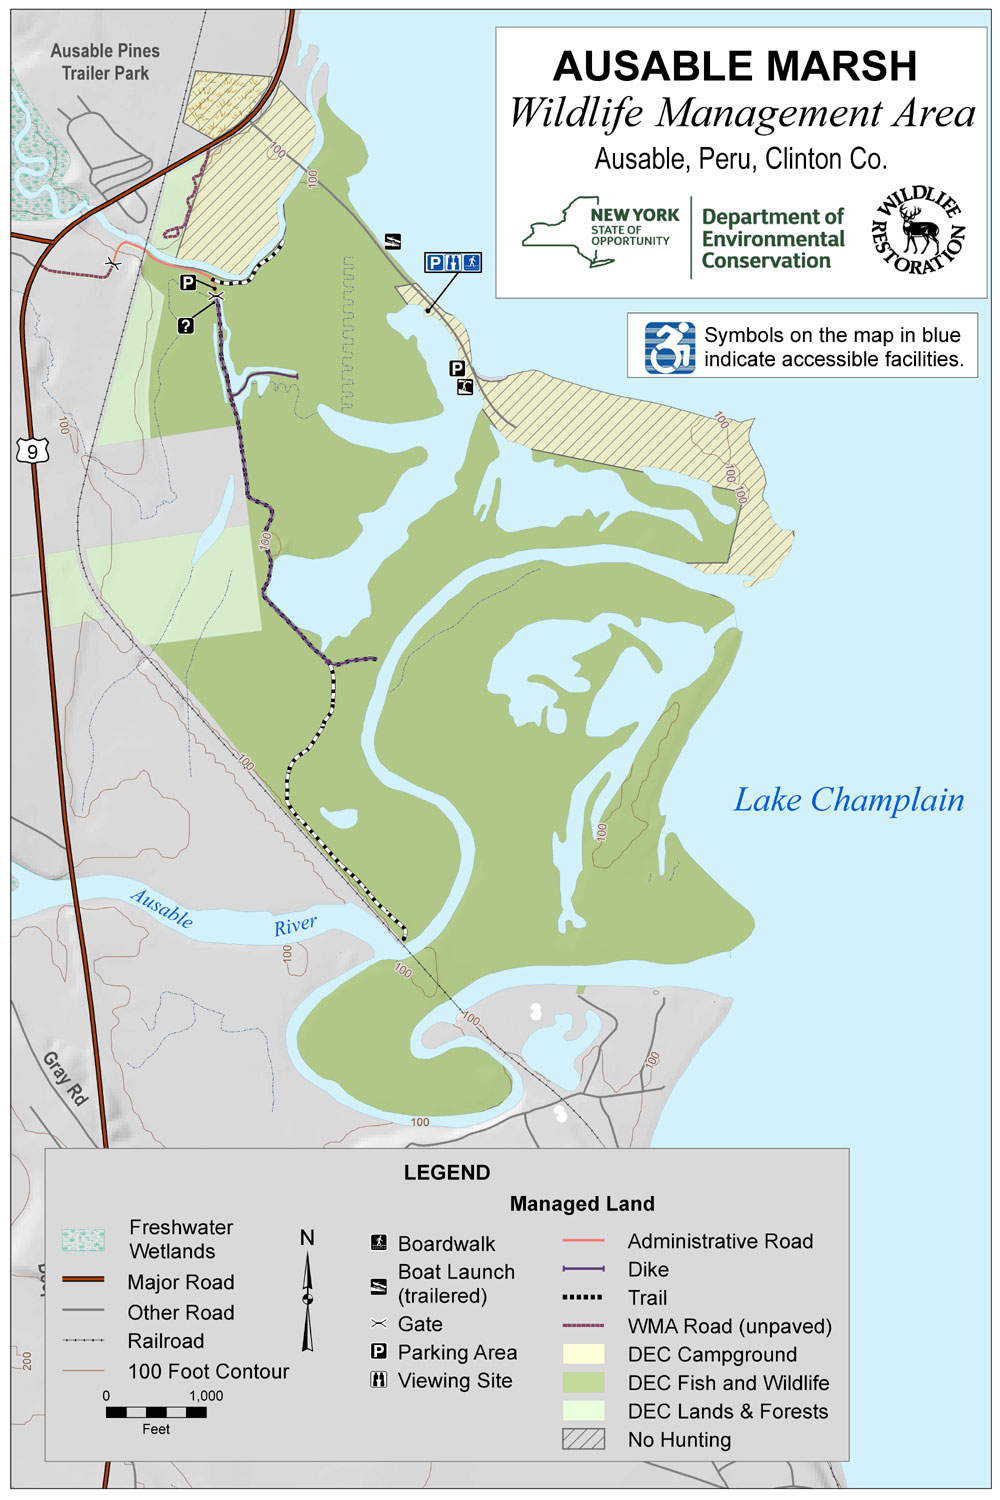 Map of the Ausable Marsh Wildlife Management Area